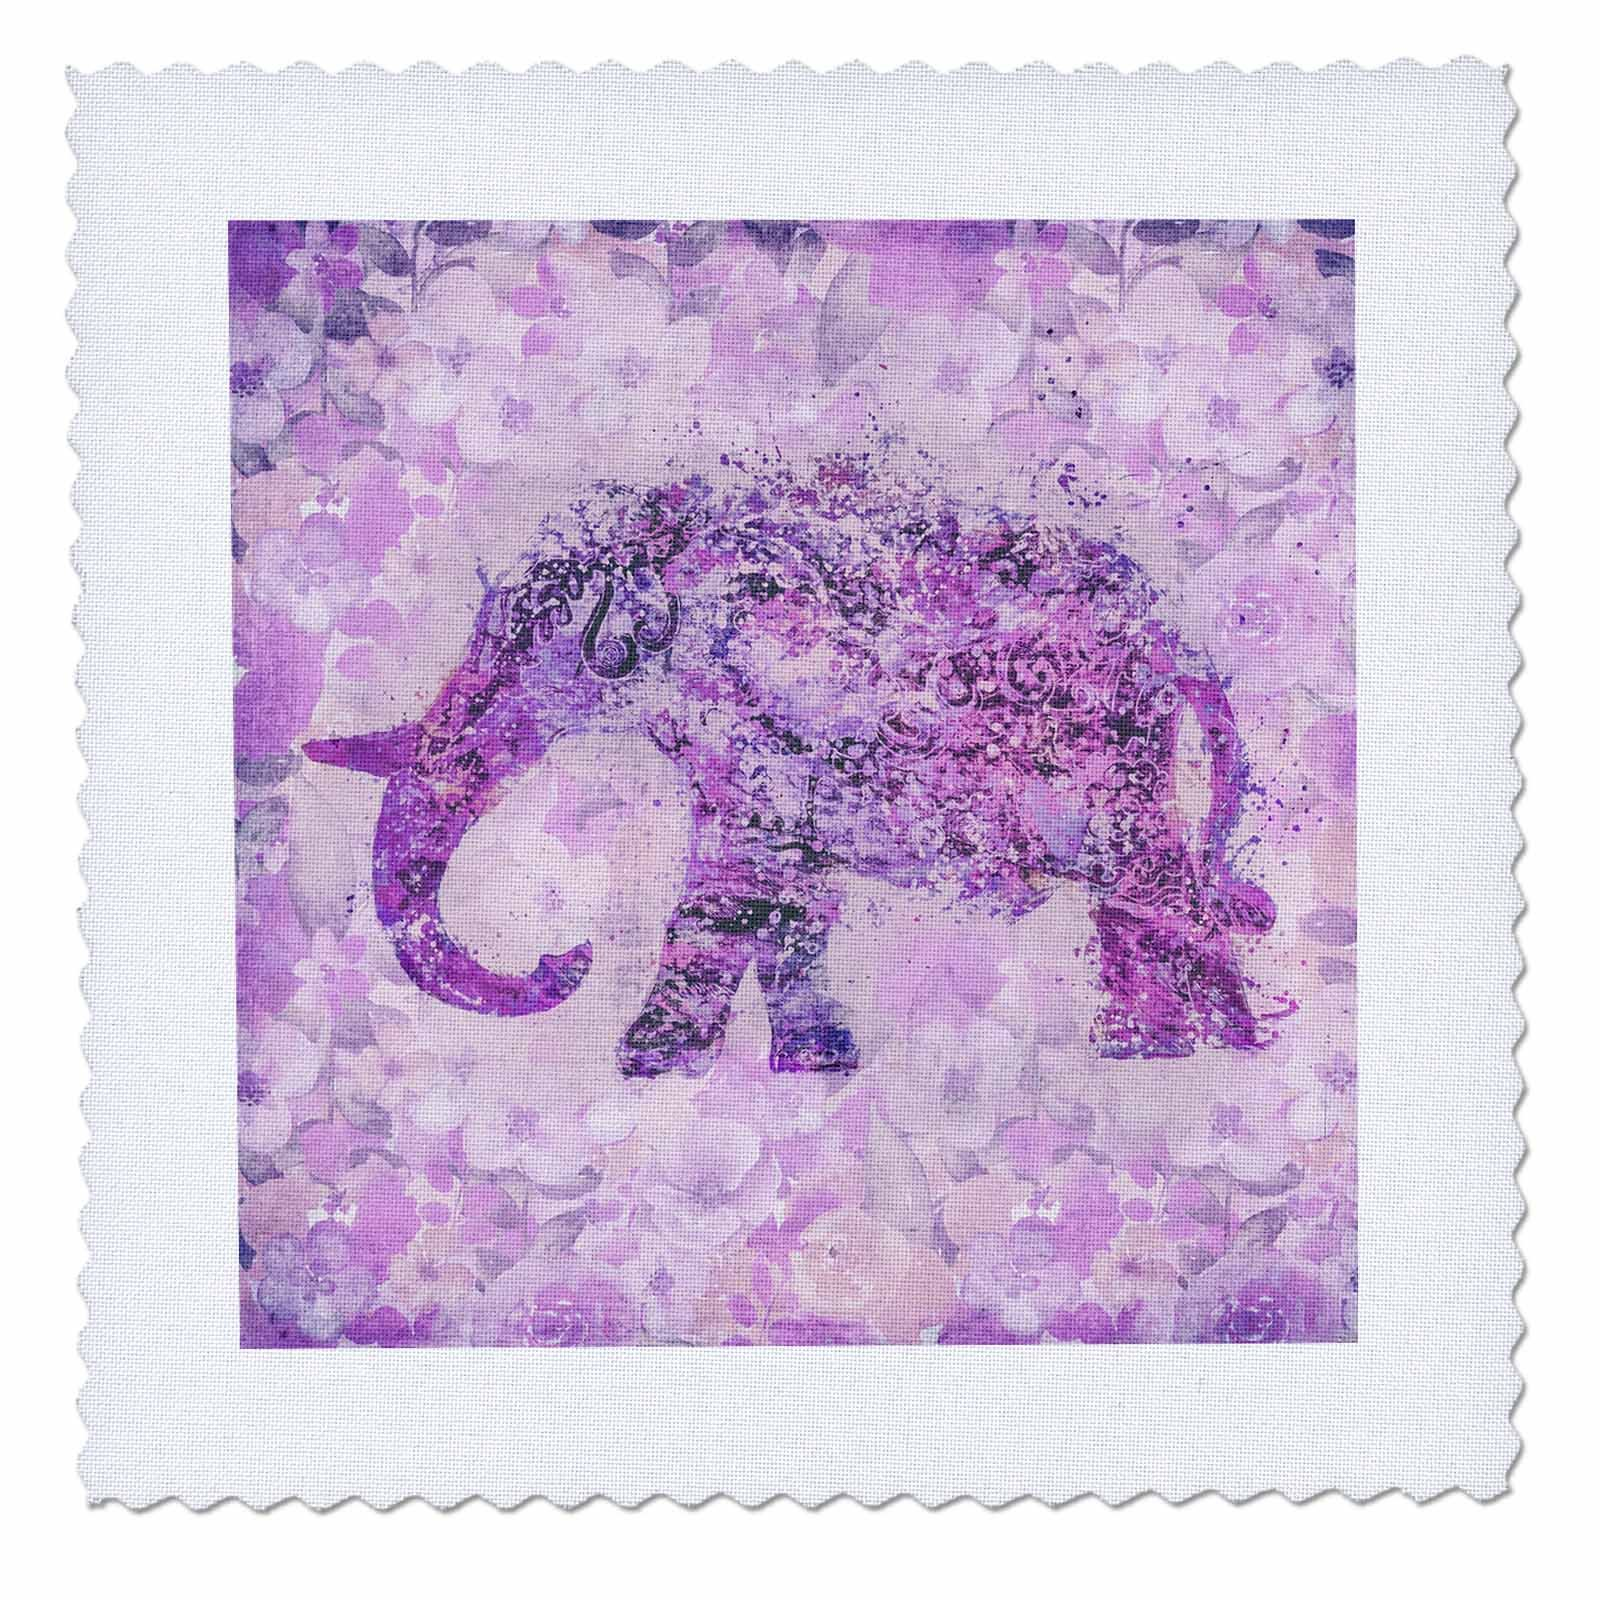 3dRose Andrea Haase Animals Illustration - Floral Elephant Illustration In Soft Purple Pastels - 22x22 inch quilt square (qs_276224_9)